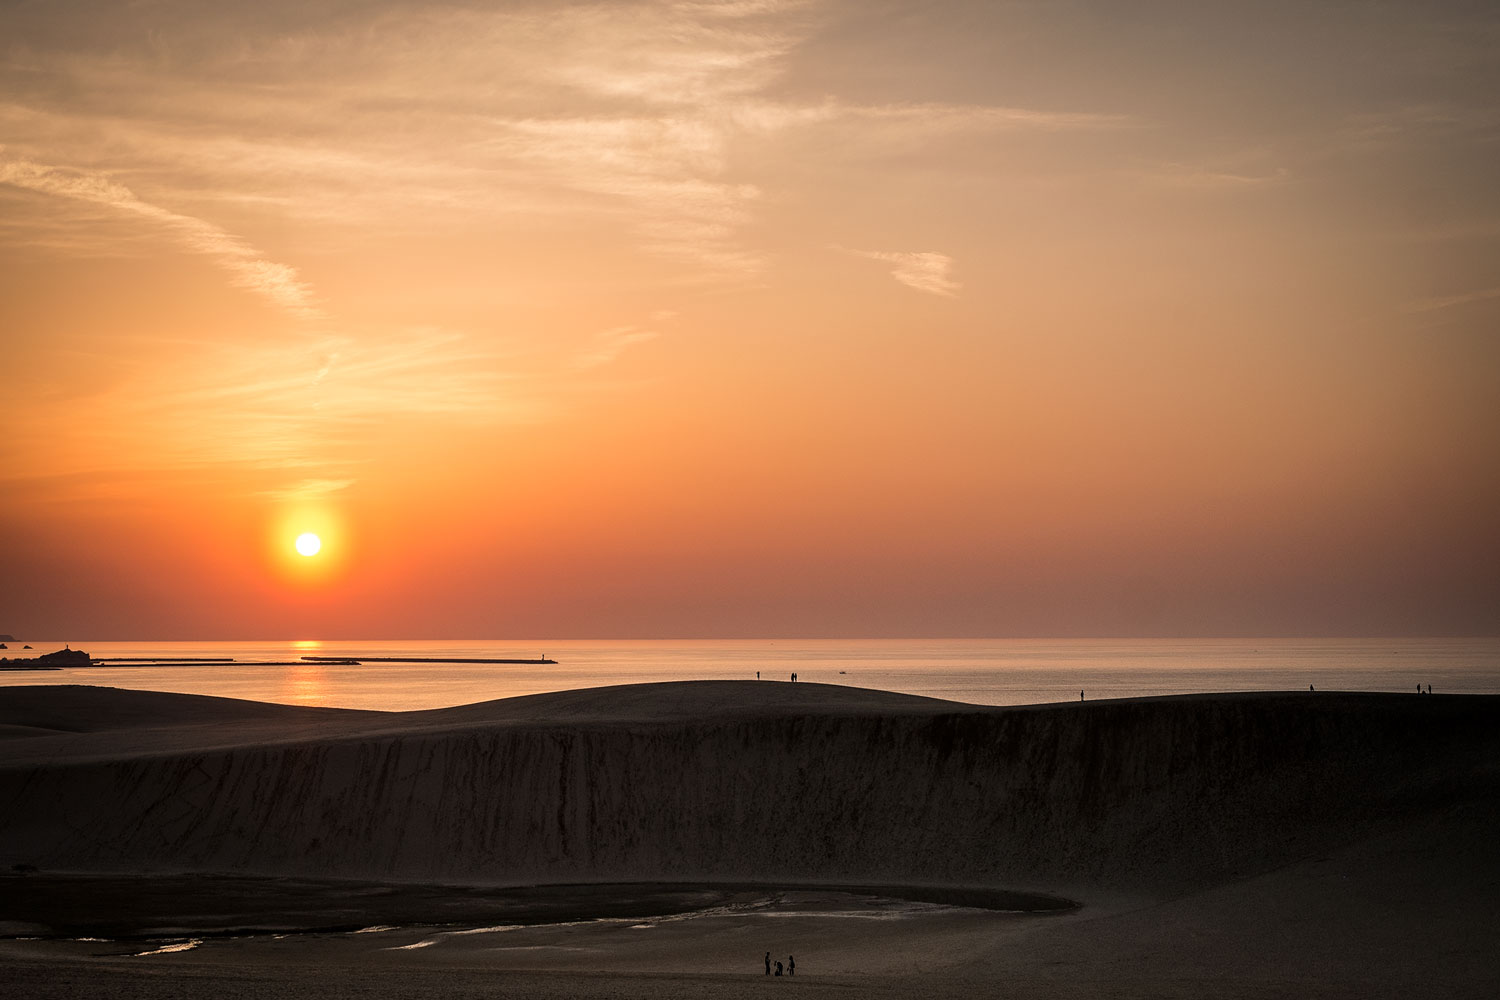 The sunset of the Tottori desert dunes.